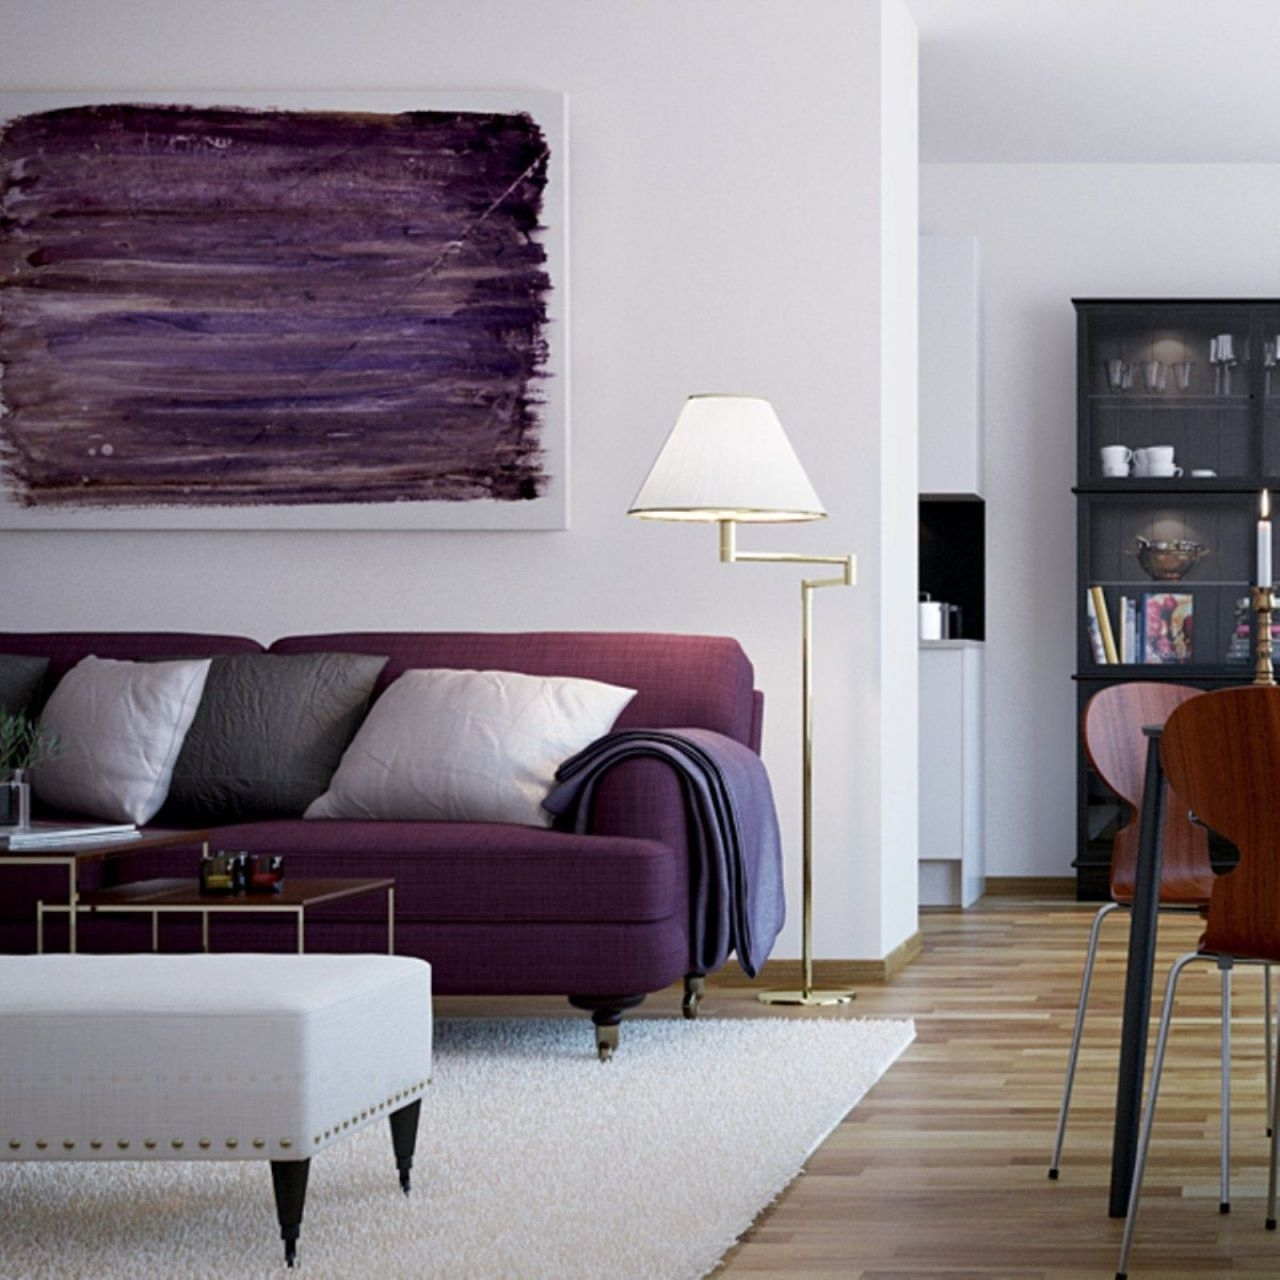 Modern Living Room Ideas With Purple Color Schemes07